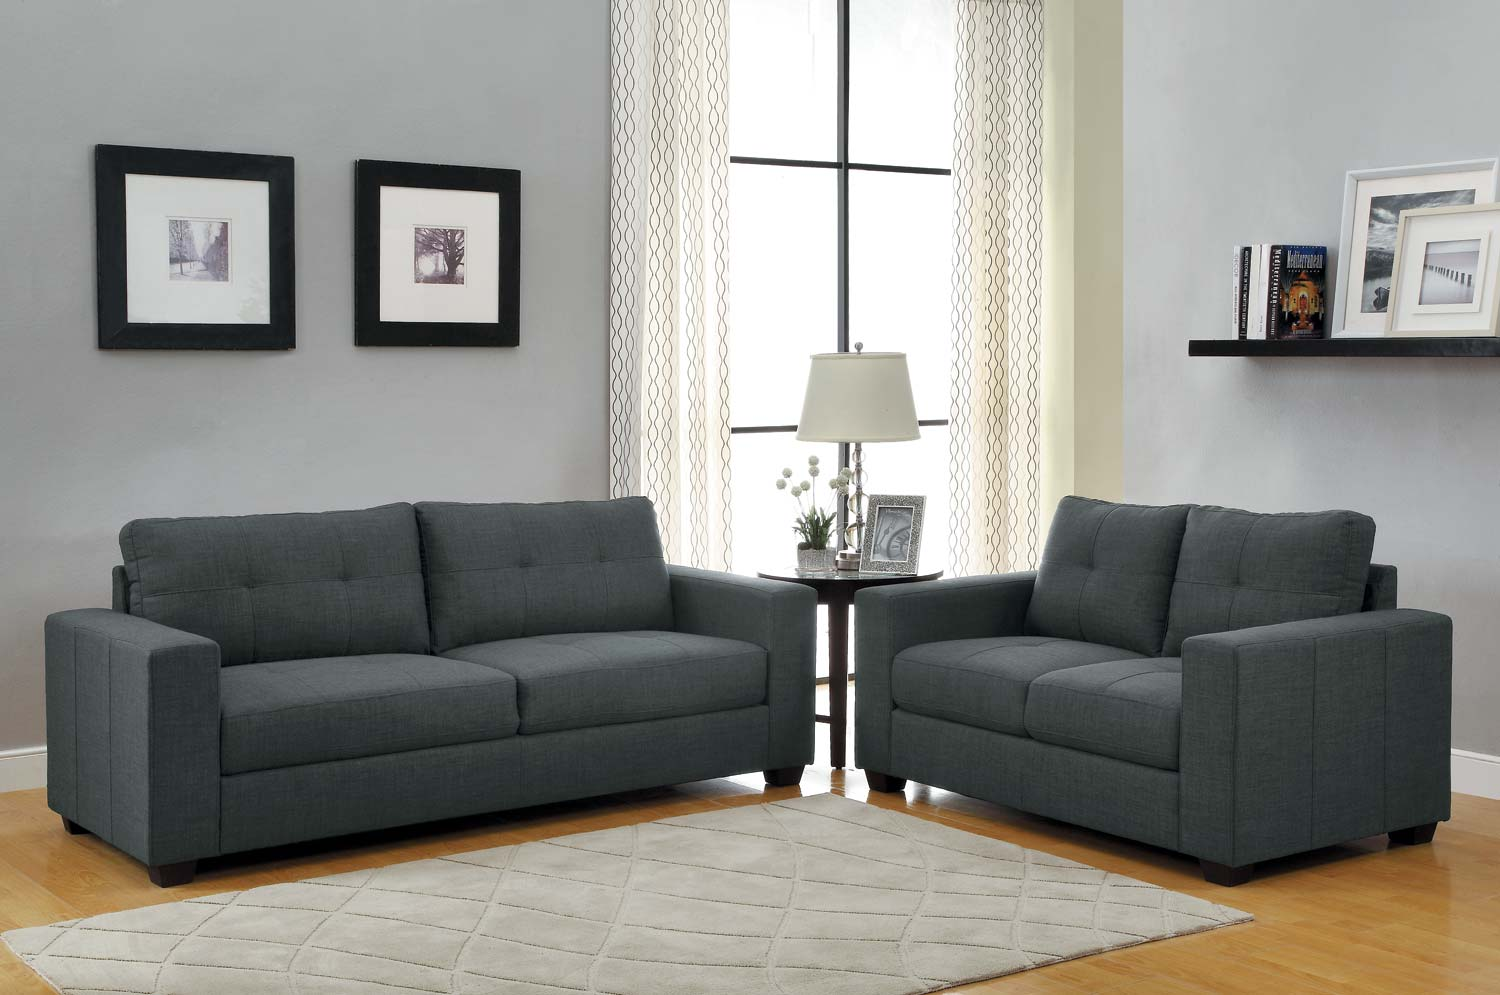 Homelegance ashmont sofa set dark grey linen u9639 3 at homelement com